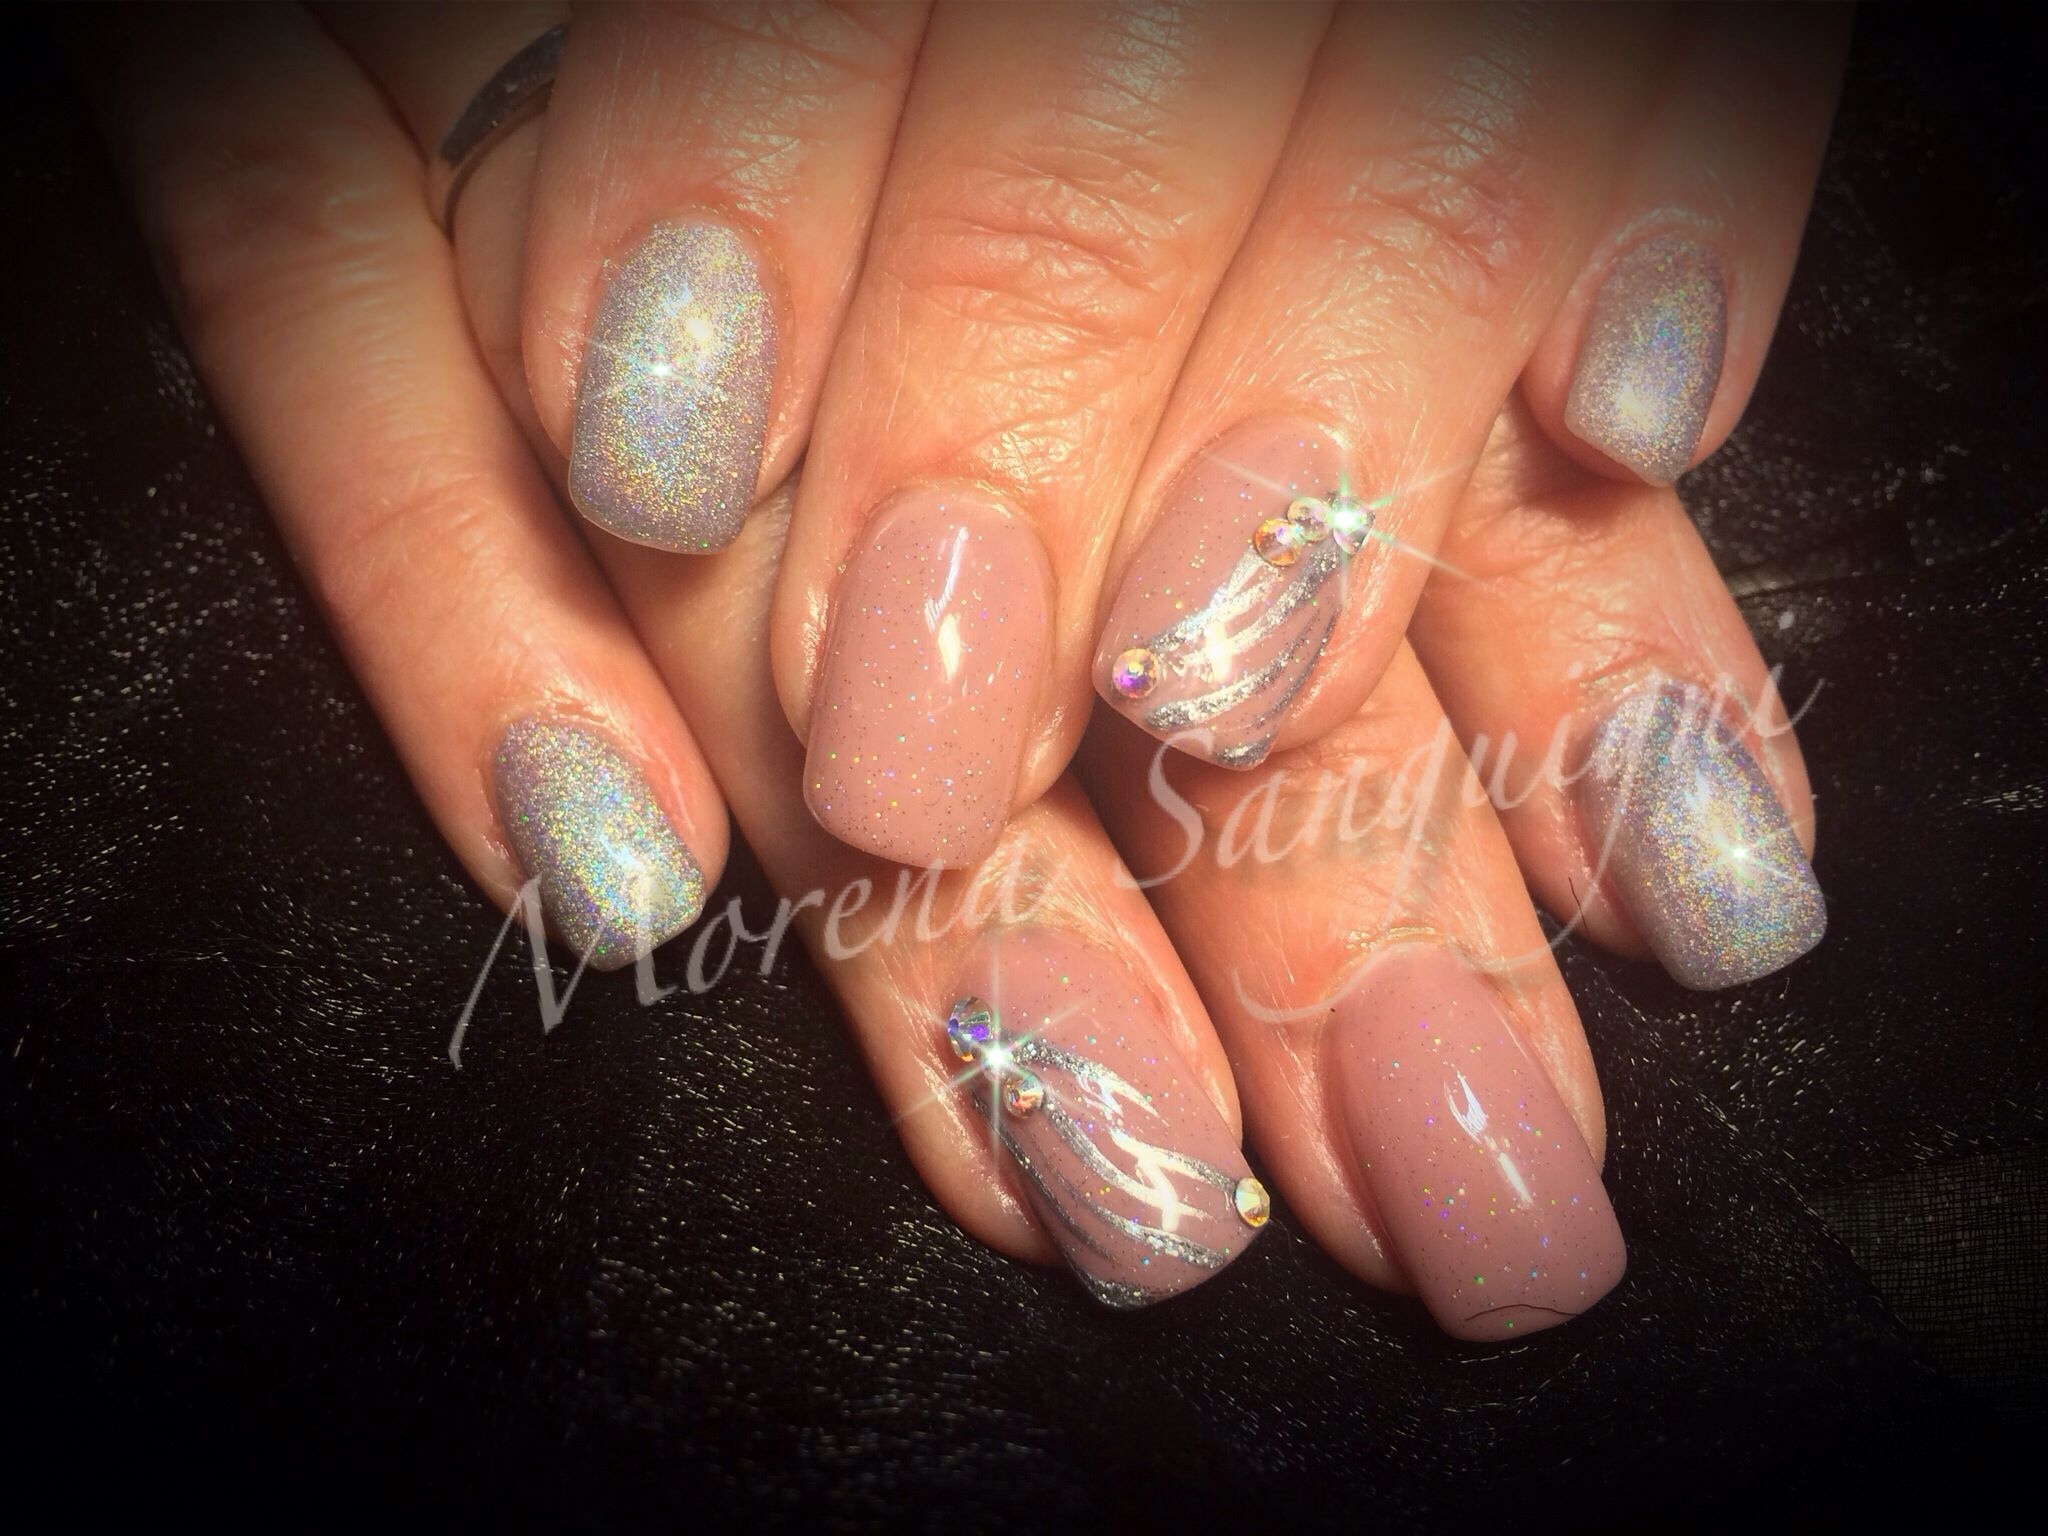 Acrylic nails with gel polish and art, nude with silver diamond dust ...